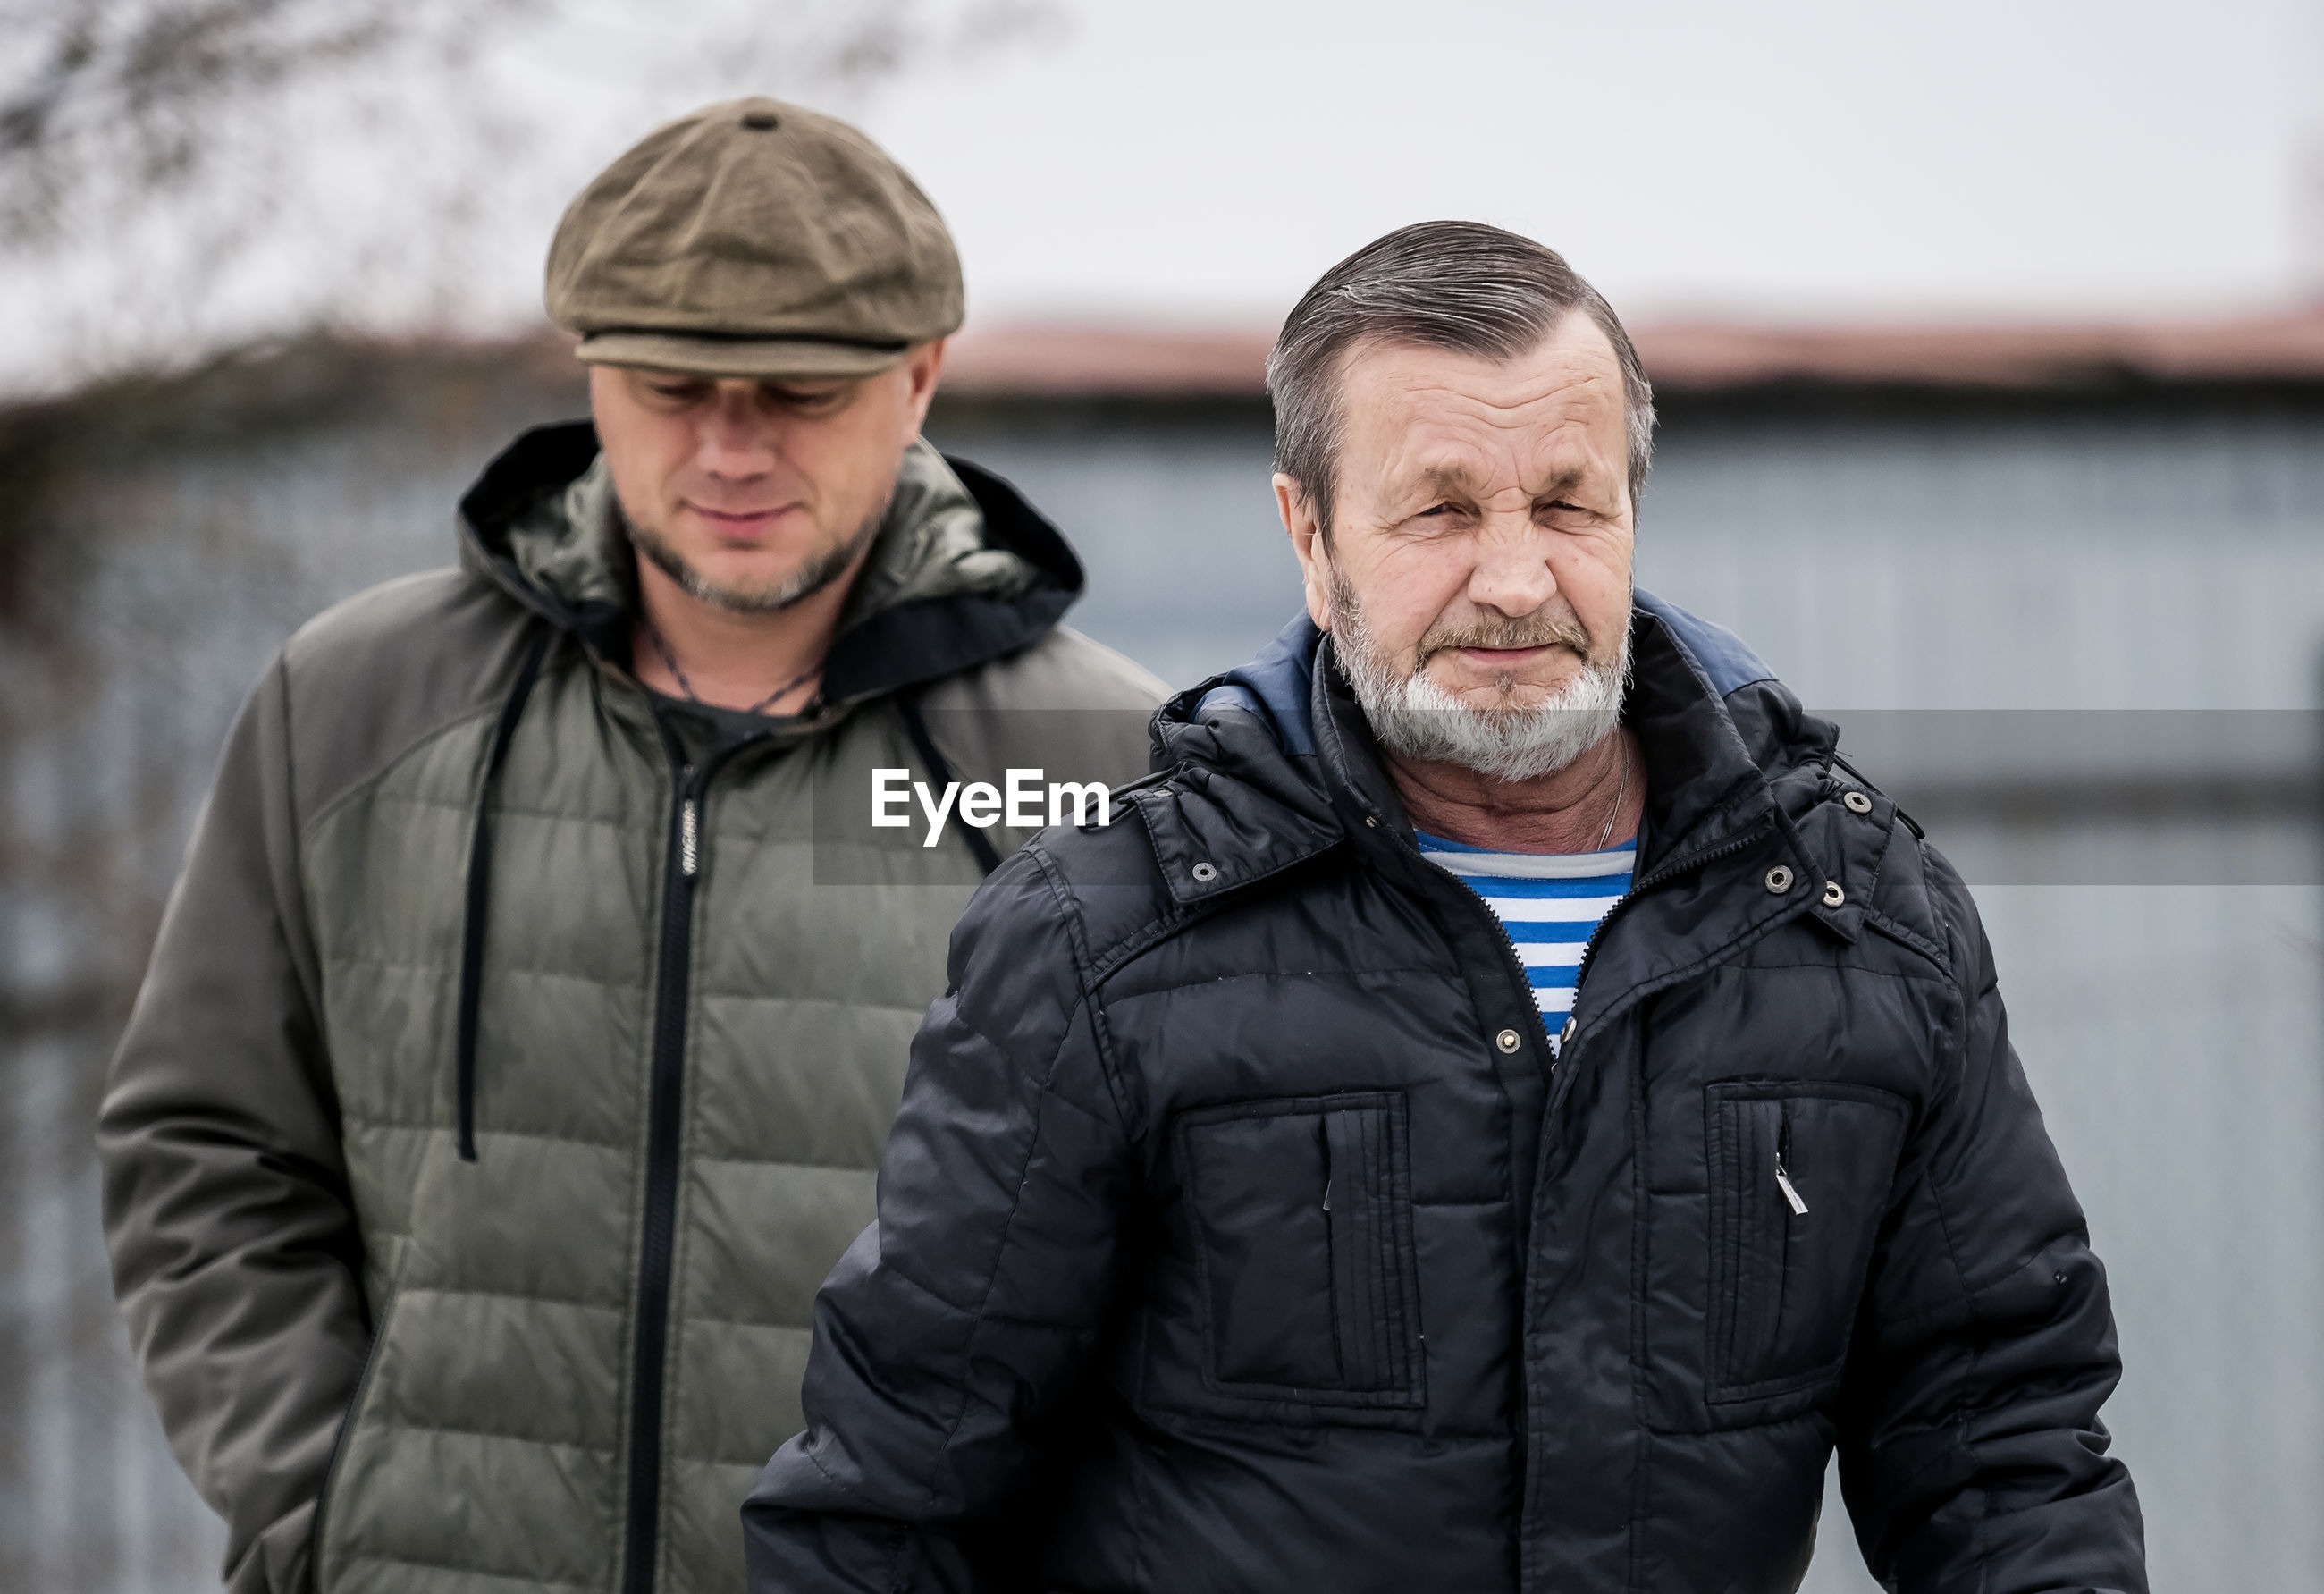 Two men together in warm clothes outdoors in winter